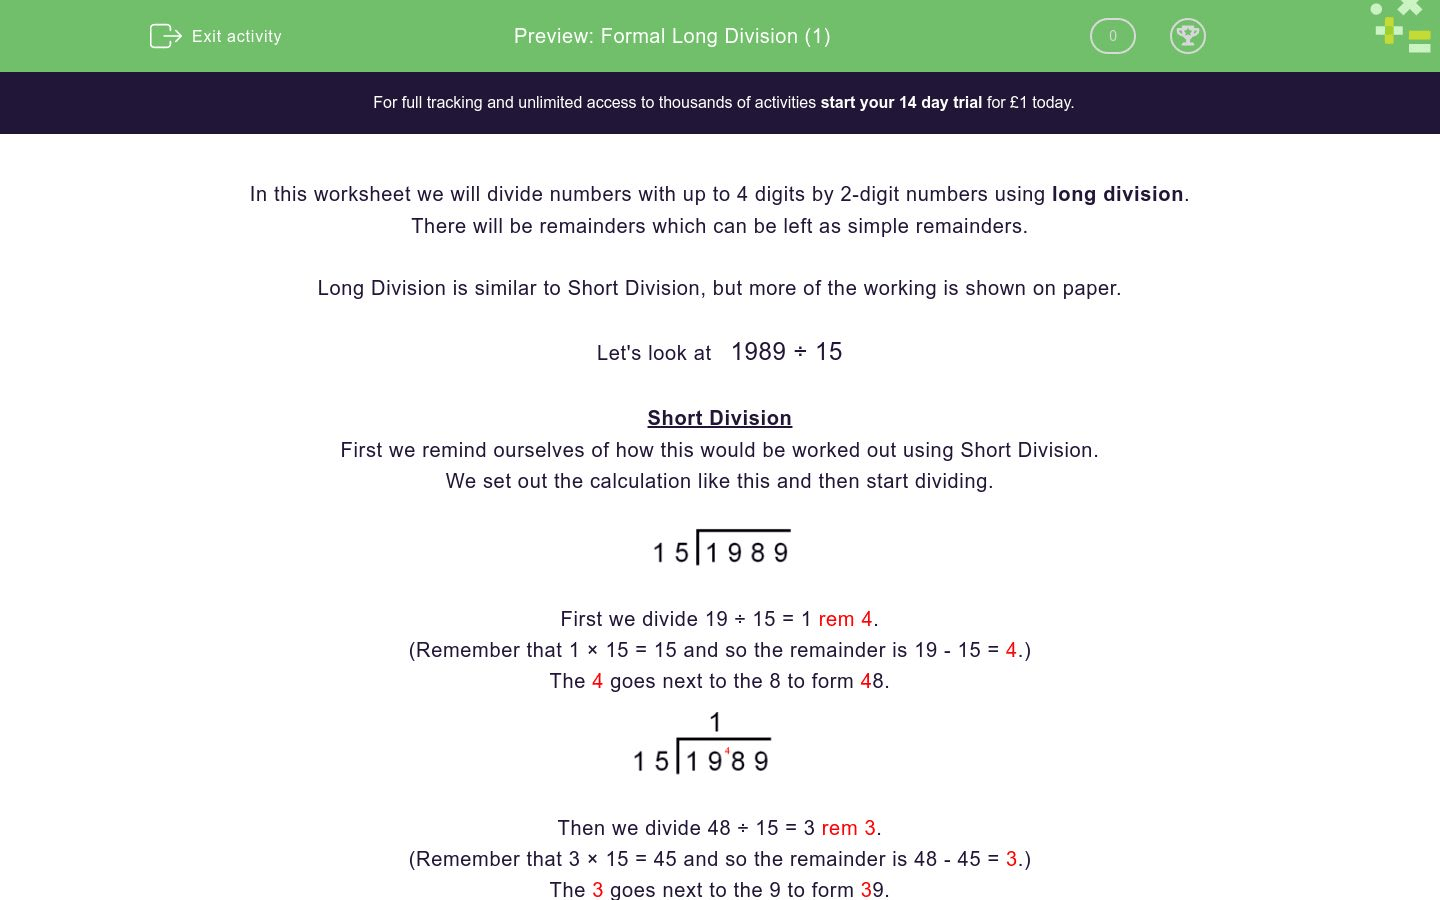 Formal Long Division 1 Worksheet